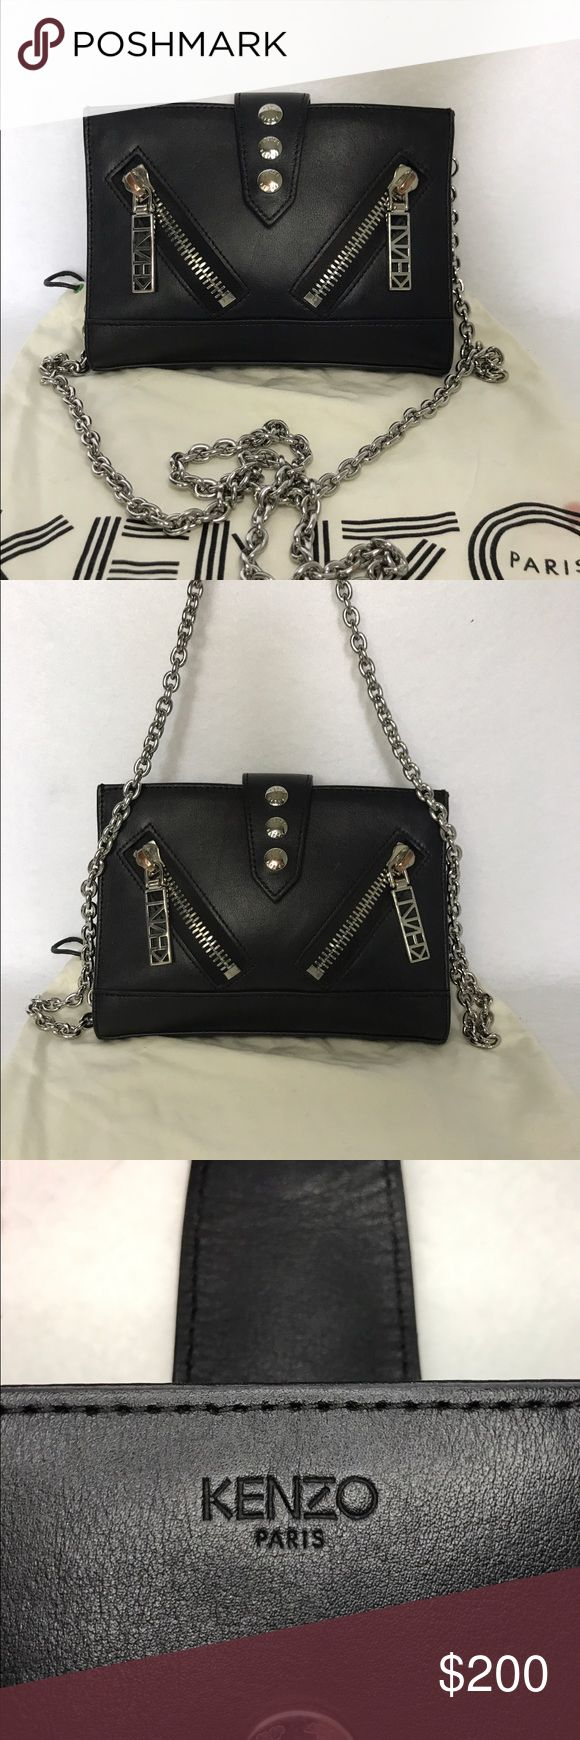 """KENZO Kalifornia Crossbody Chain Bag & Dust Bag Amazing Bag!  Retail:  $325  Only signs of wear: Silver is tarnished a bit on front snaps - not 'chipping' & still shines so it's not easily noticed. See photos.  Height:  5.5"""" Length: 7.5"""" Depth: 2"""" Strap Drop: 23""""  Snap flap covers 1 zip & 3 open compartment - one w/ slots for credit cards. 2 diagonal front & 1 rear zip pockets.  A couple of small spots on Dust Bag.  I carefully wrap each item & only ship my bags in boxes - no plastic or…"""